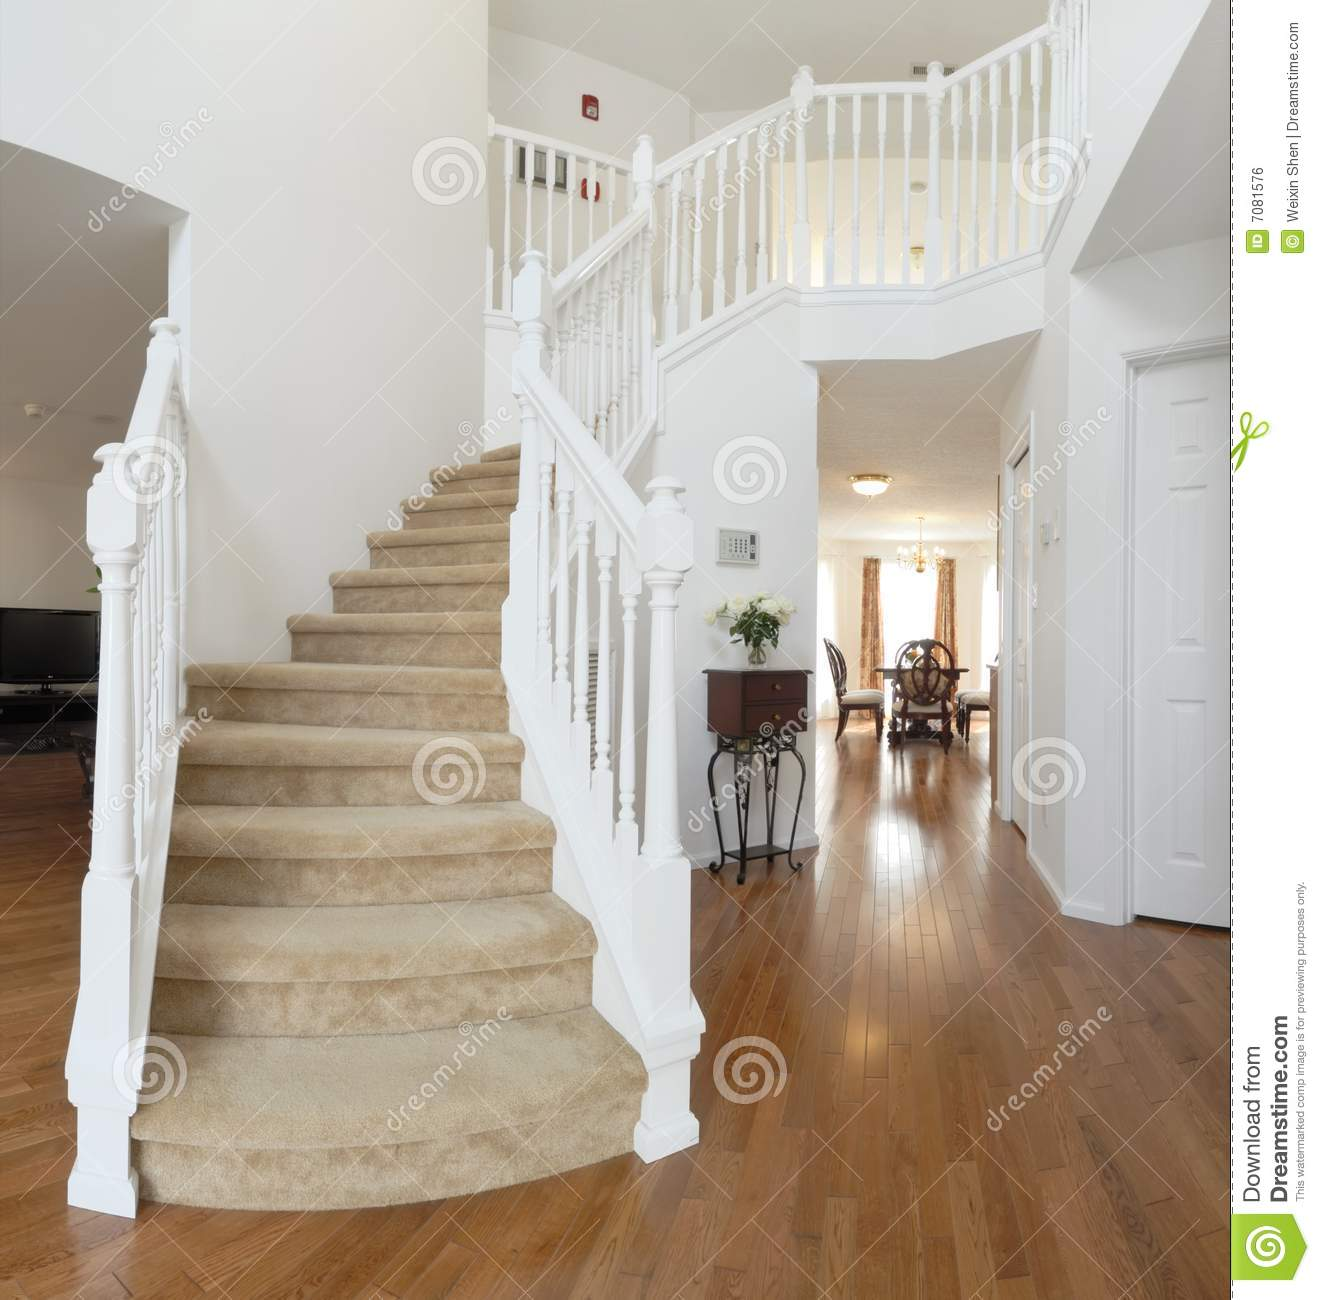 Home interior staircase royalty free stock image image 7081576 - Interior home image ...